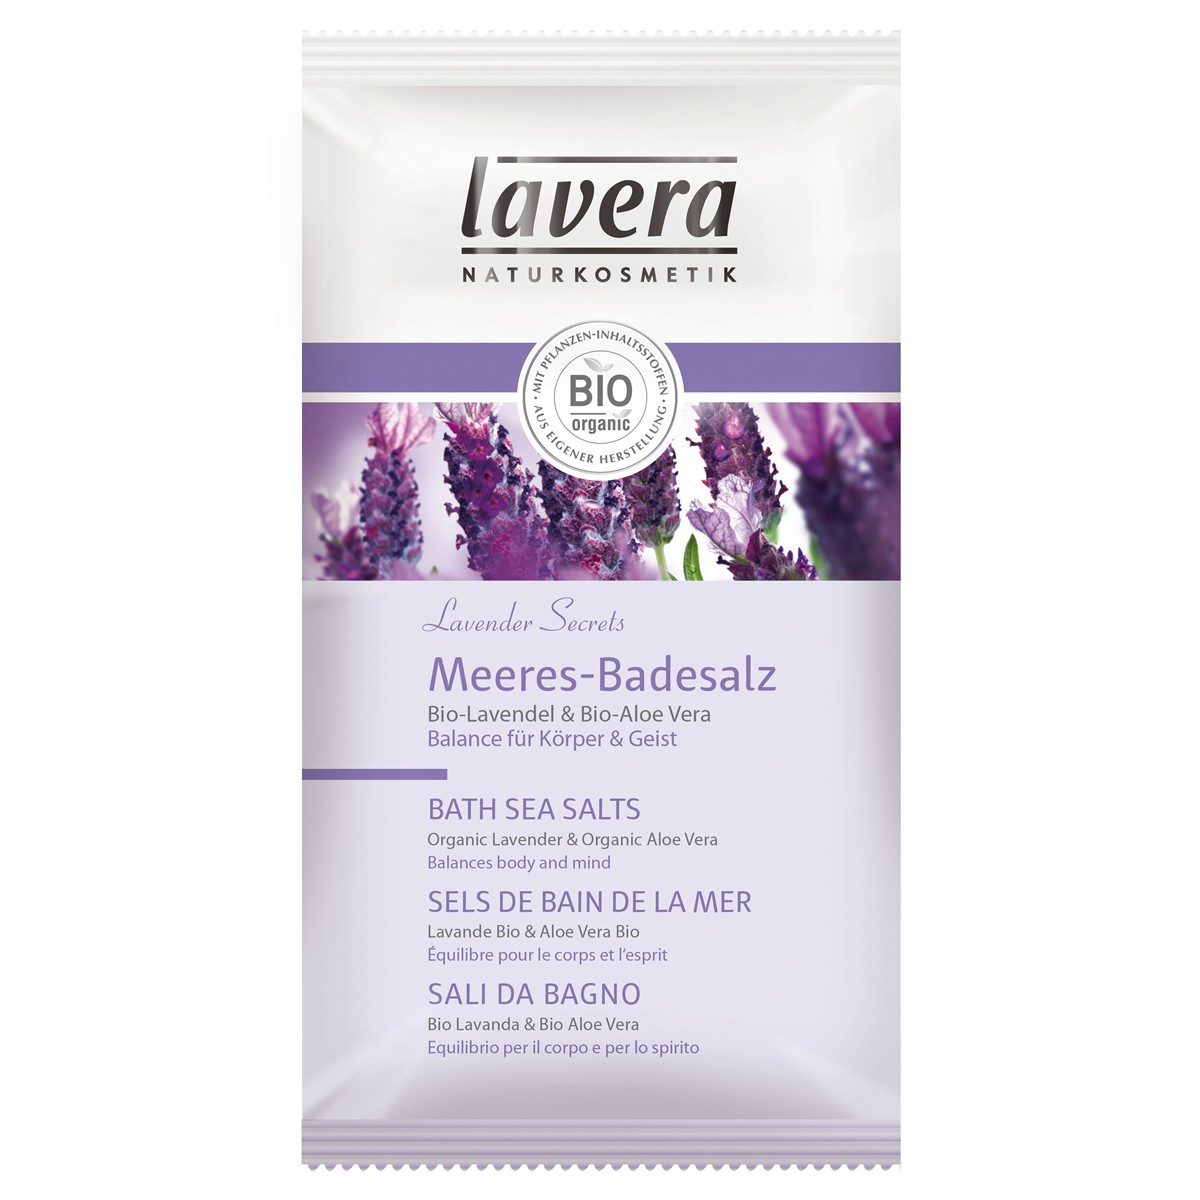 Lavera Organic Lavender Secrets Bath Sea Salts